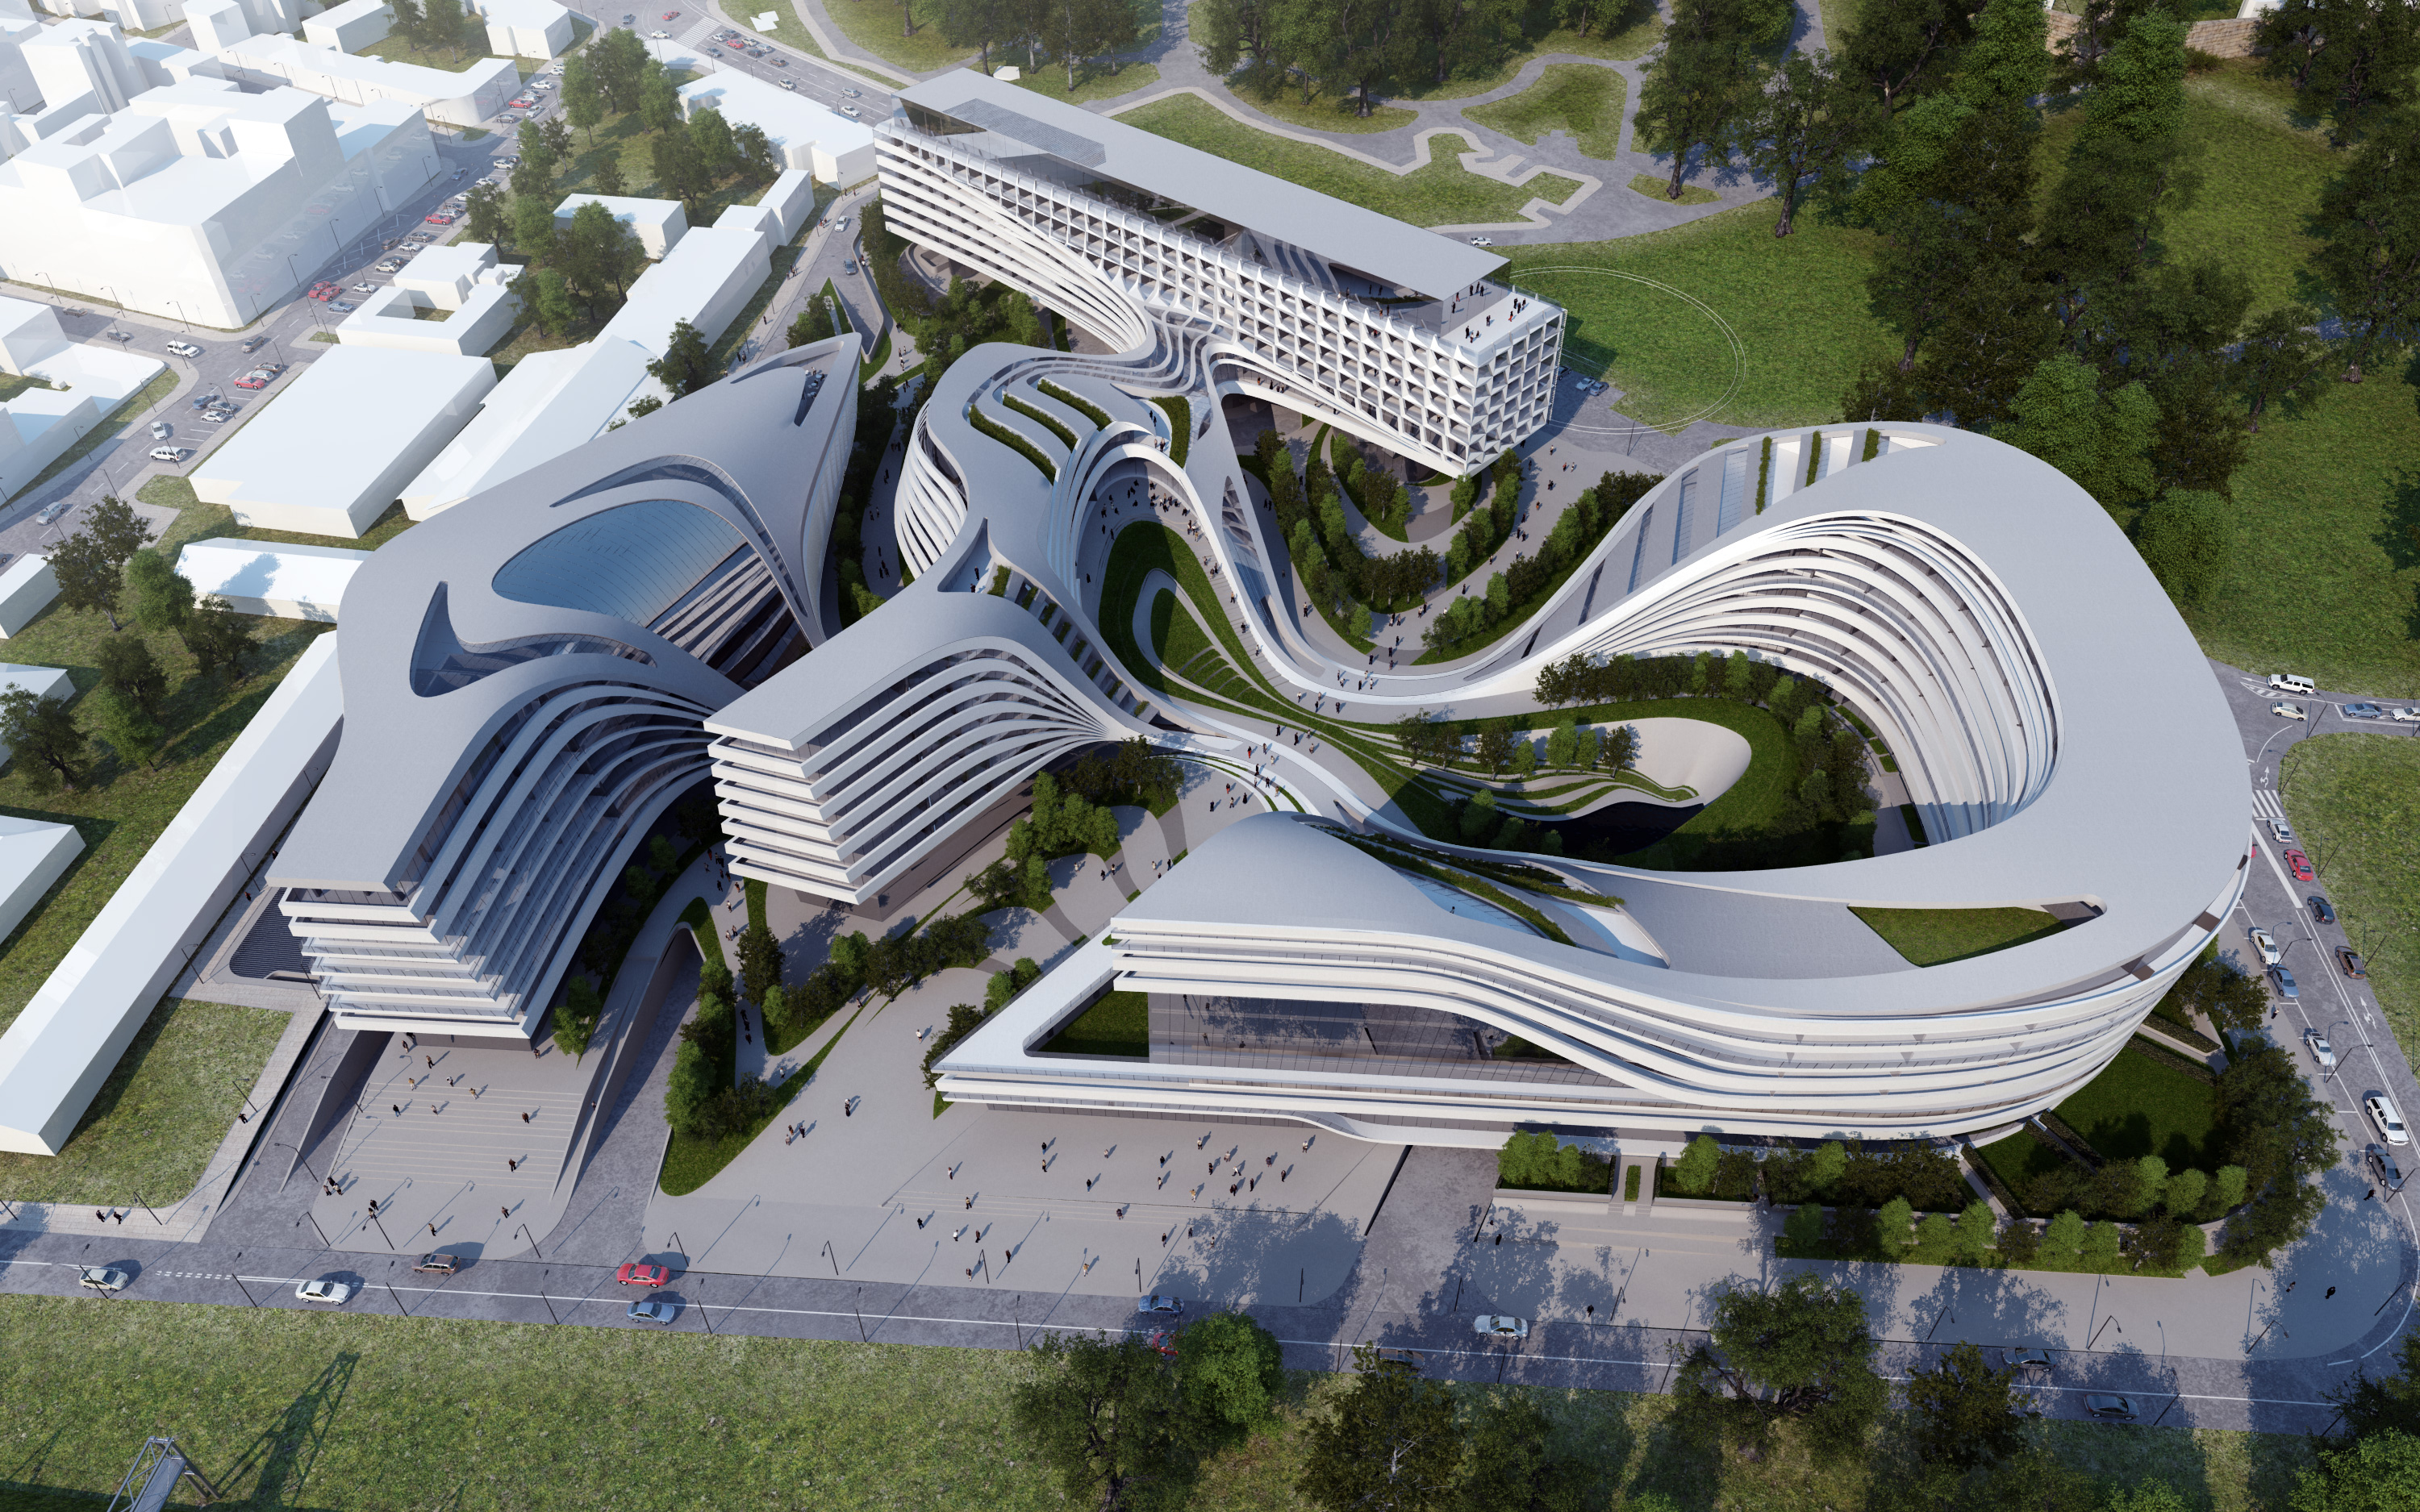 Beko masterplan belgrade zaha hadid architects the for Arquitectura zaha hadid